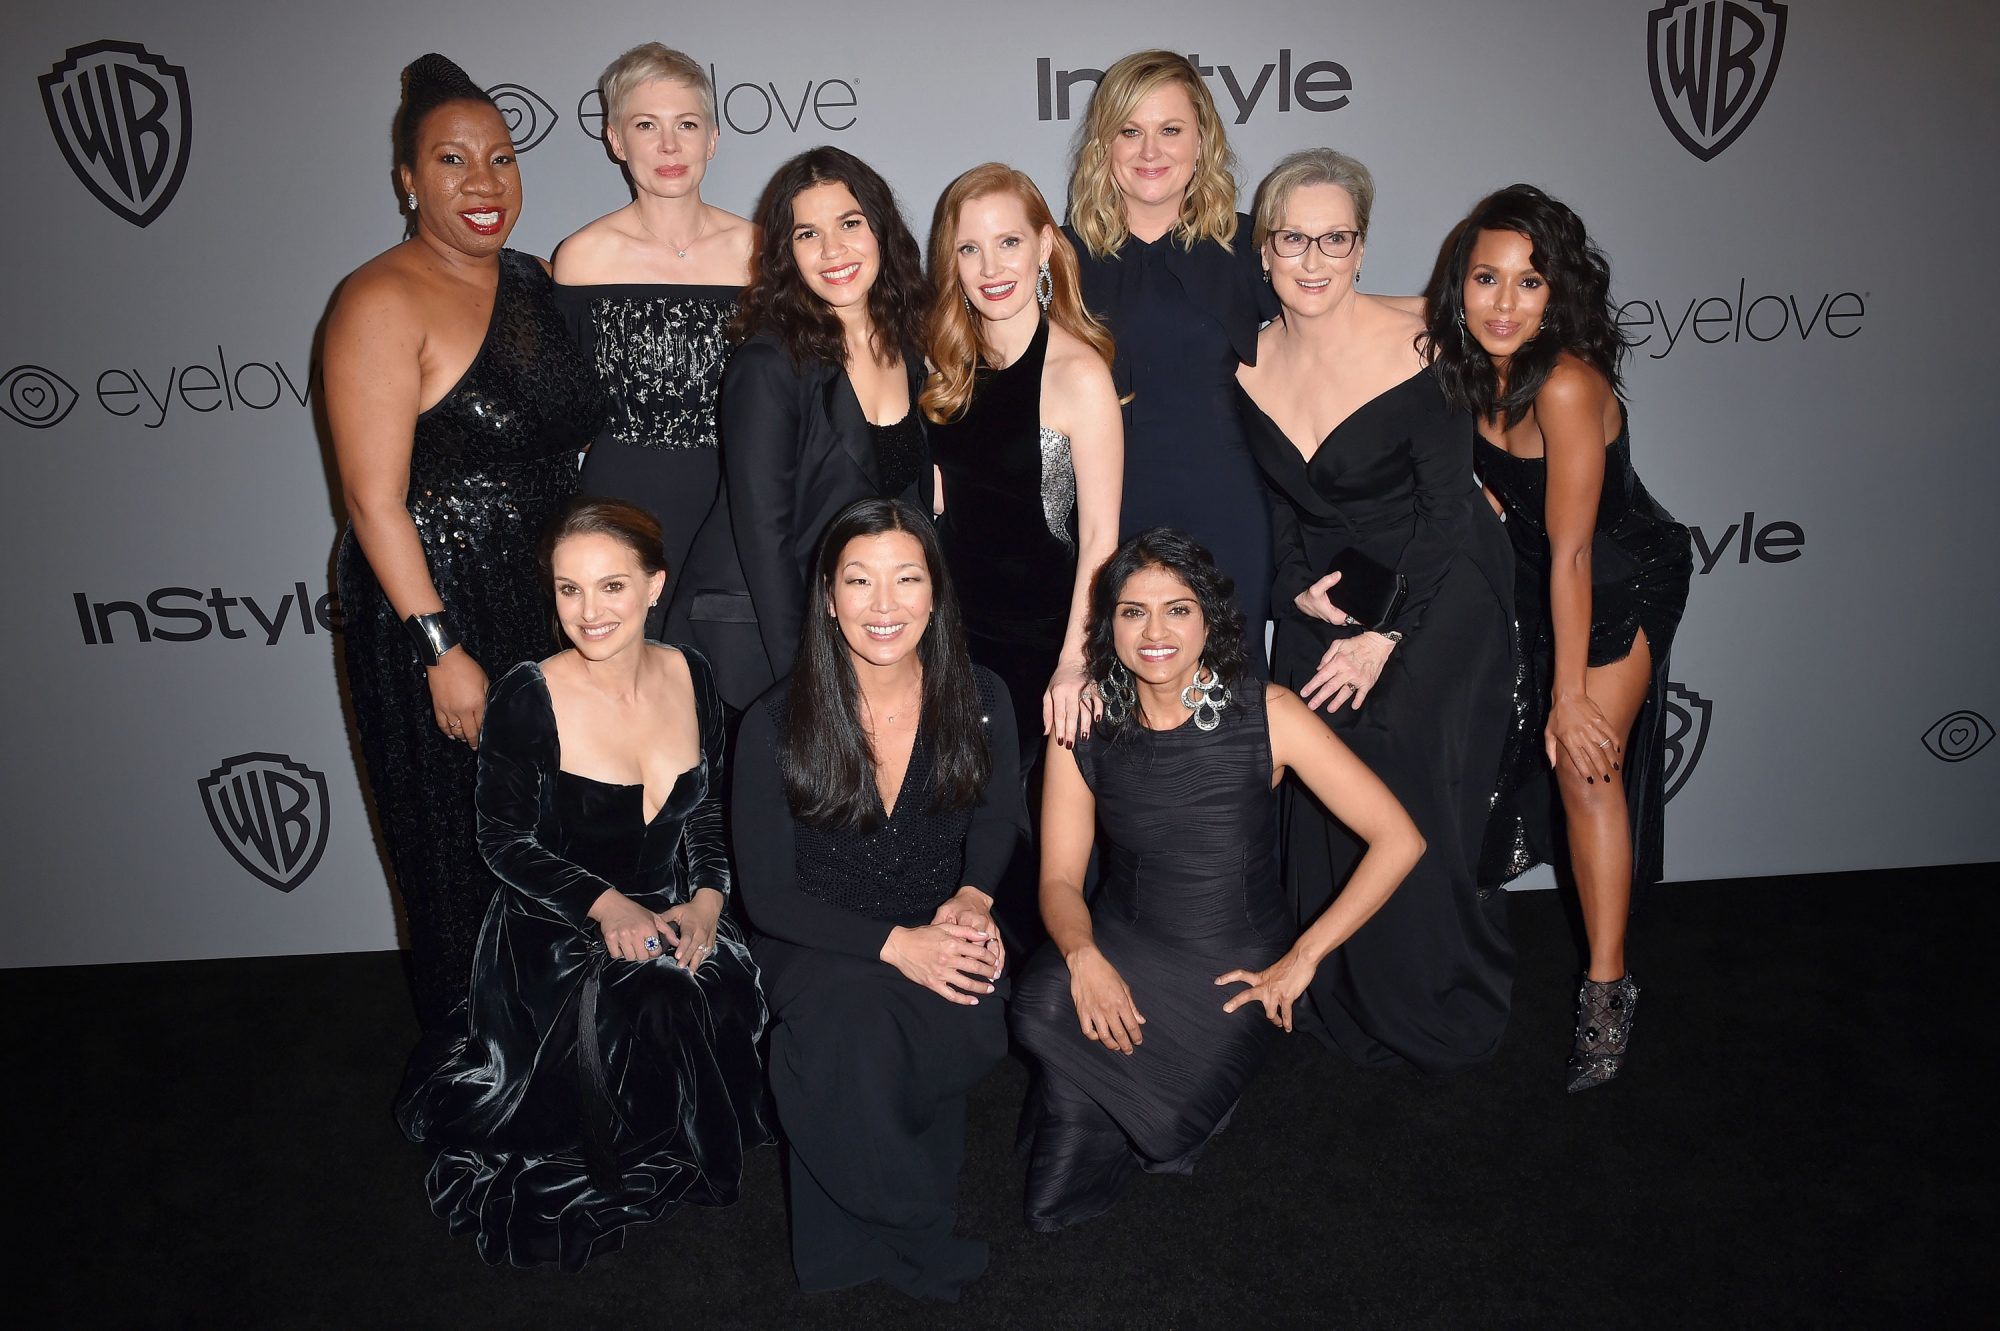 BADASS WOMEN OF THE YEAR: THE WOMEN OF TIME'S UP